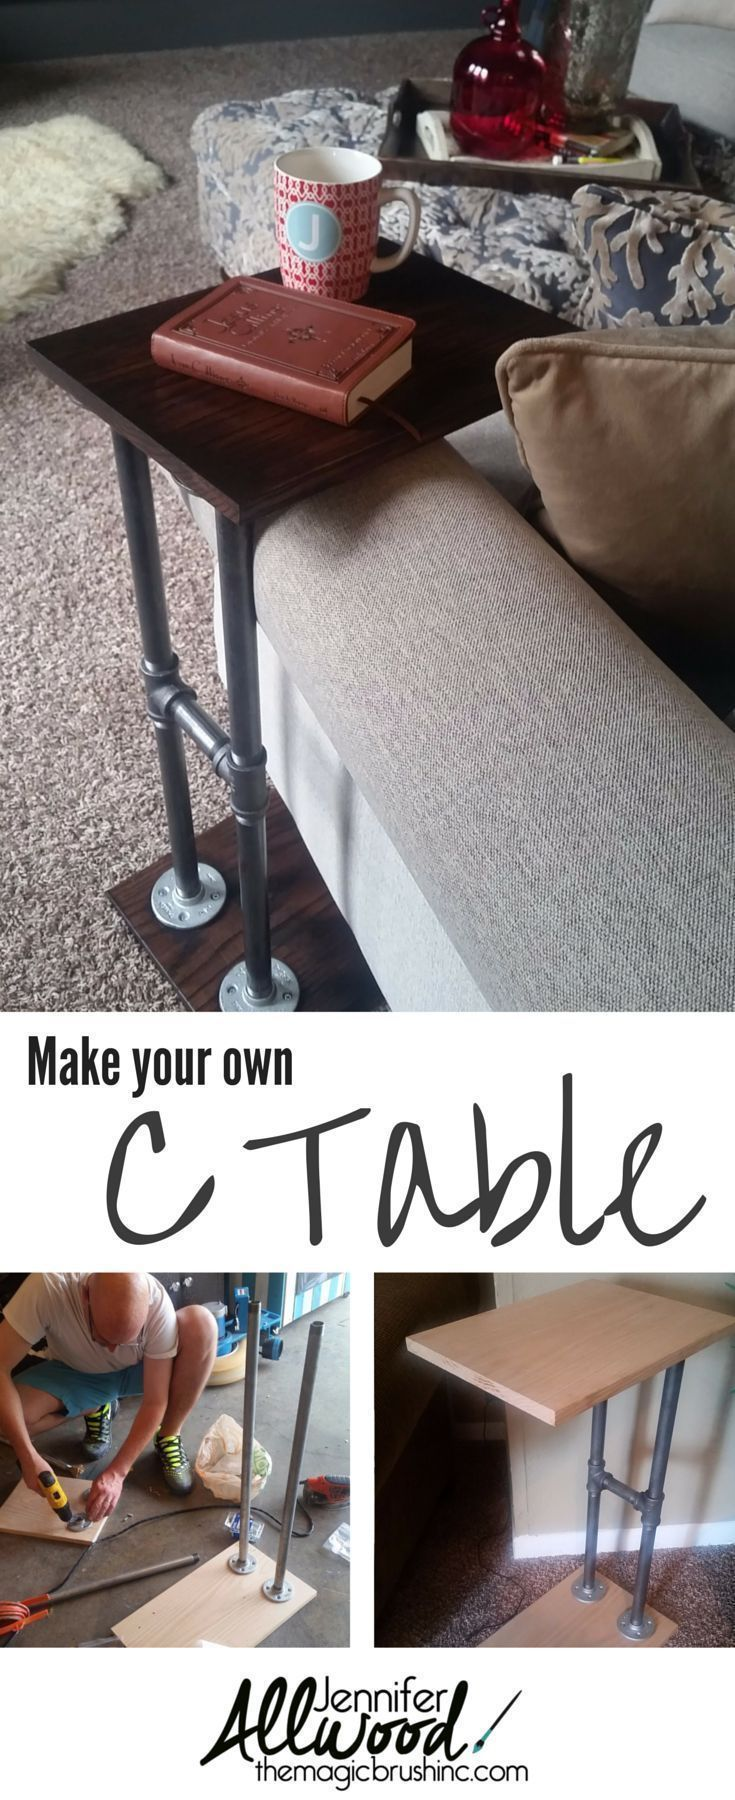 Ideas : You'll never have to reach for that coffee mug again!  Make your own C table for armchairs! We used industrial pipes, flanges and stained oak wood pieces. Get instructions from Jennifer Allwood at TheMagicBrushinc.com #diy #diyhomedecor #armchair #homepro